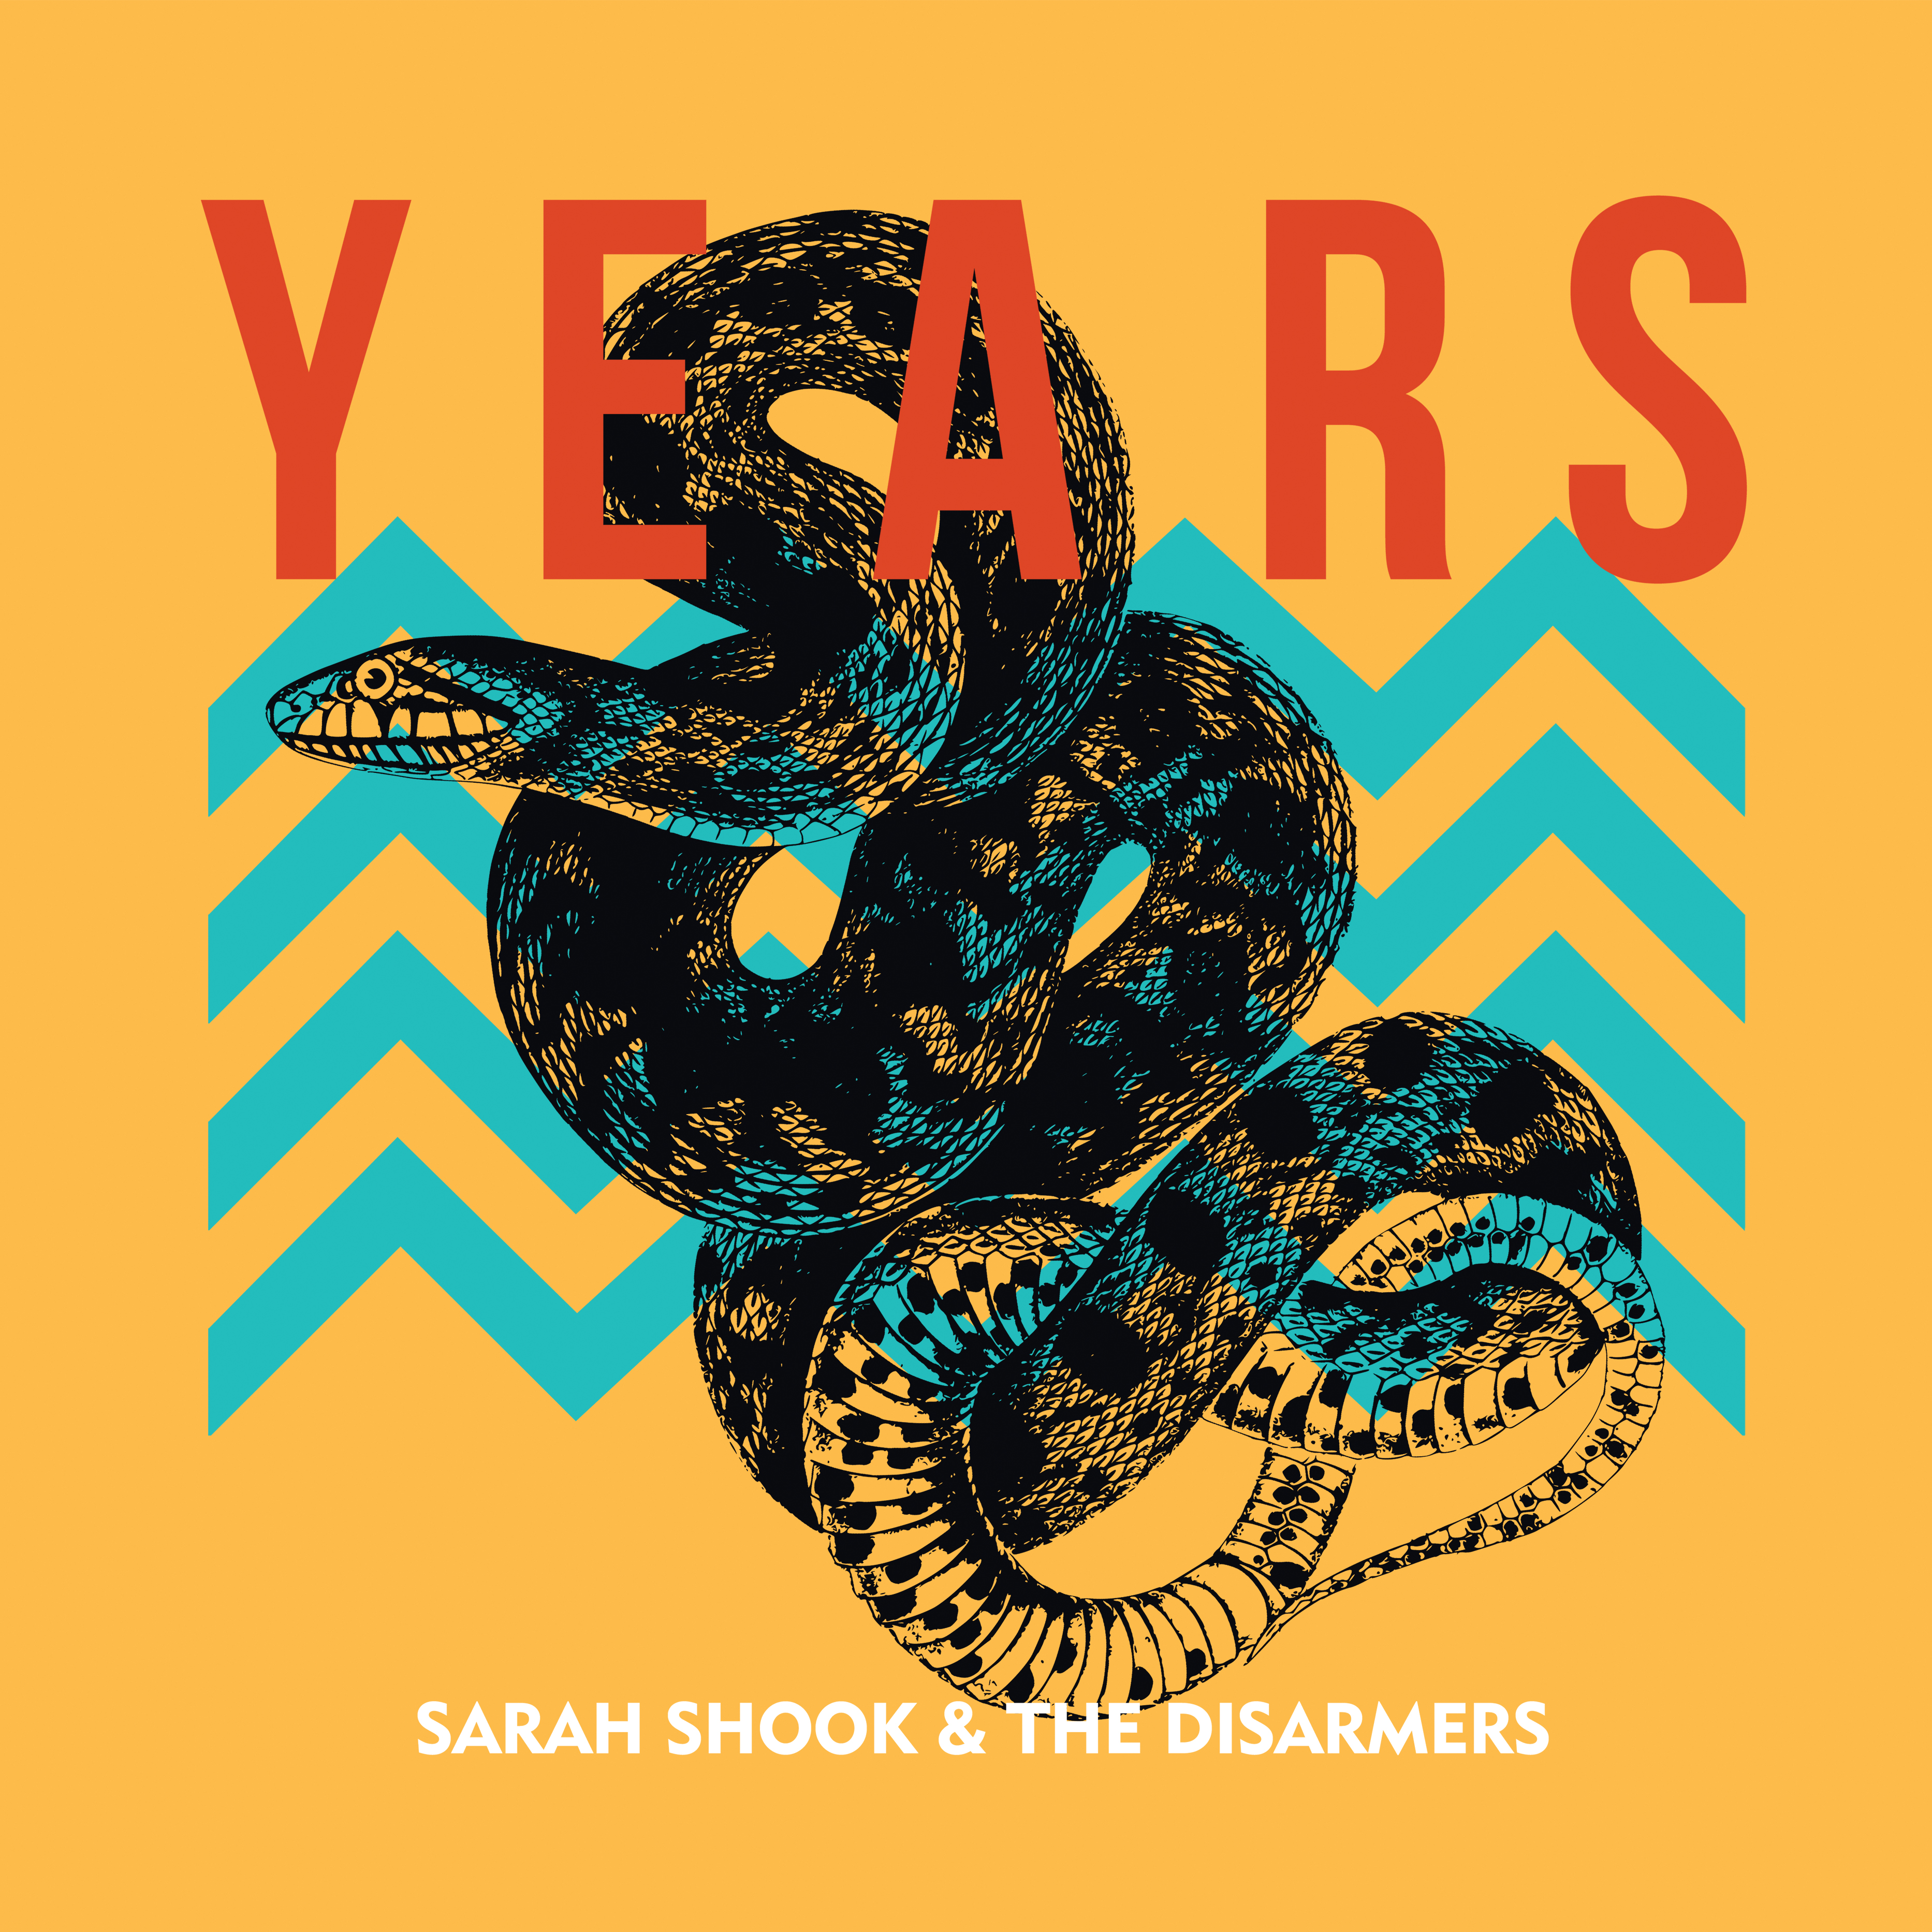 Art for The Bottle Never Lets Me Down by Sarah Shook & the Disarmers